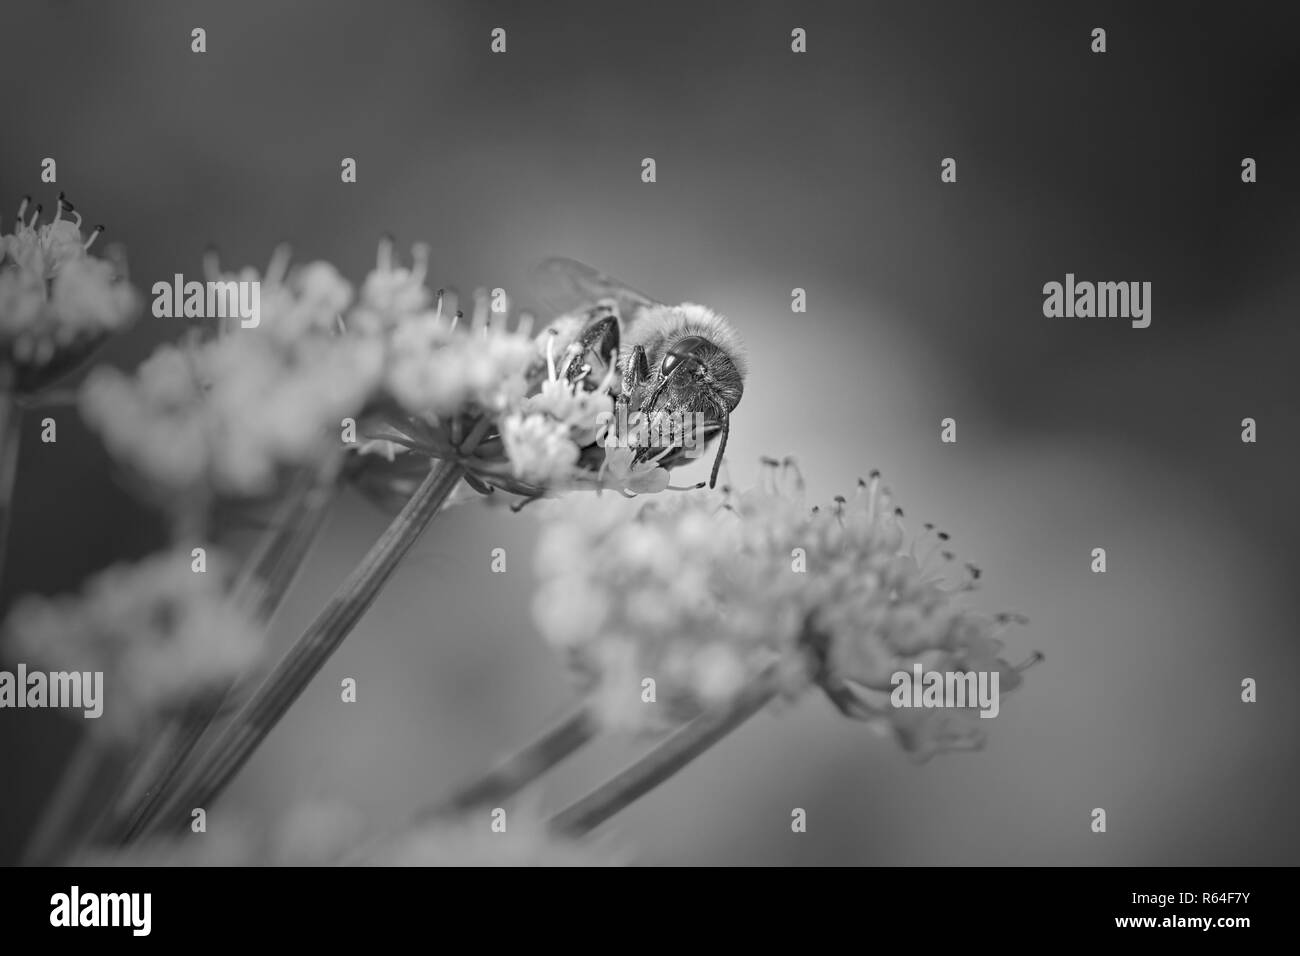 Macro of a bee sucking pollen from wild white flowers. Converted black and white. - Stock Image